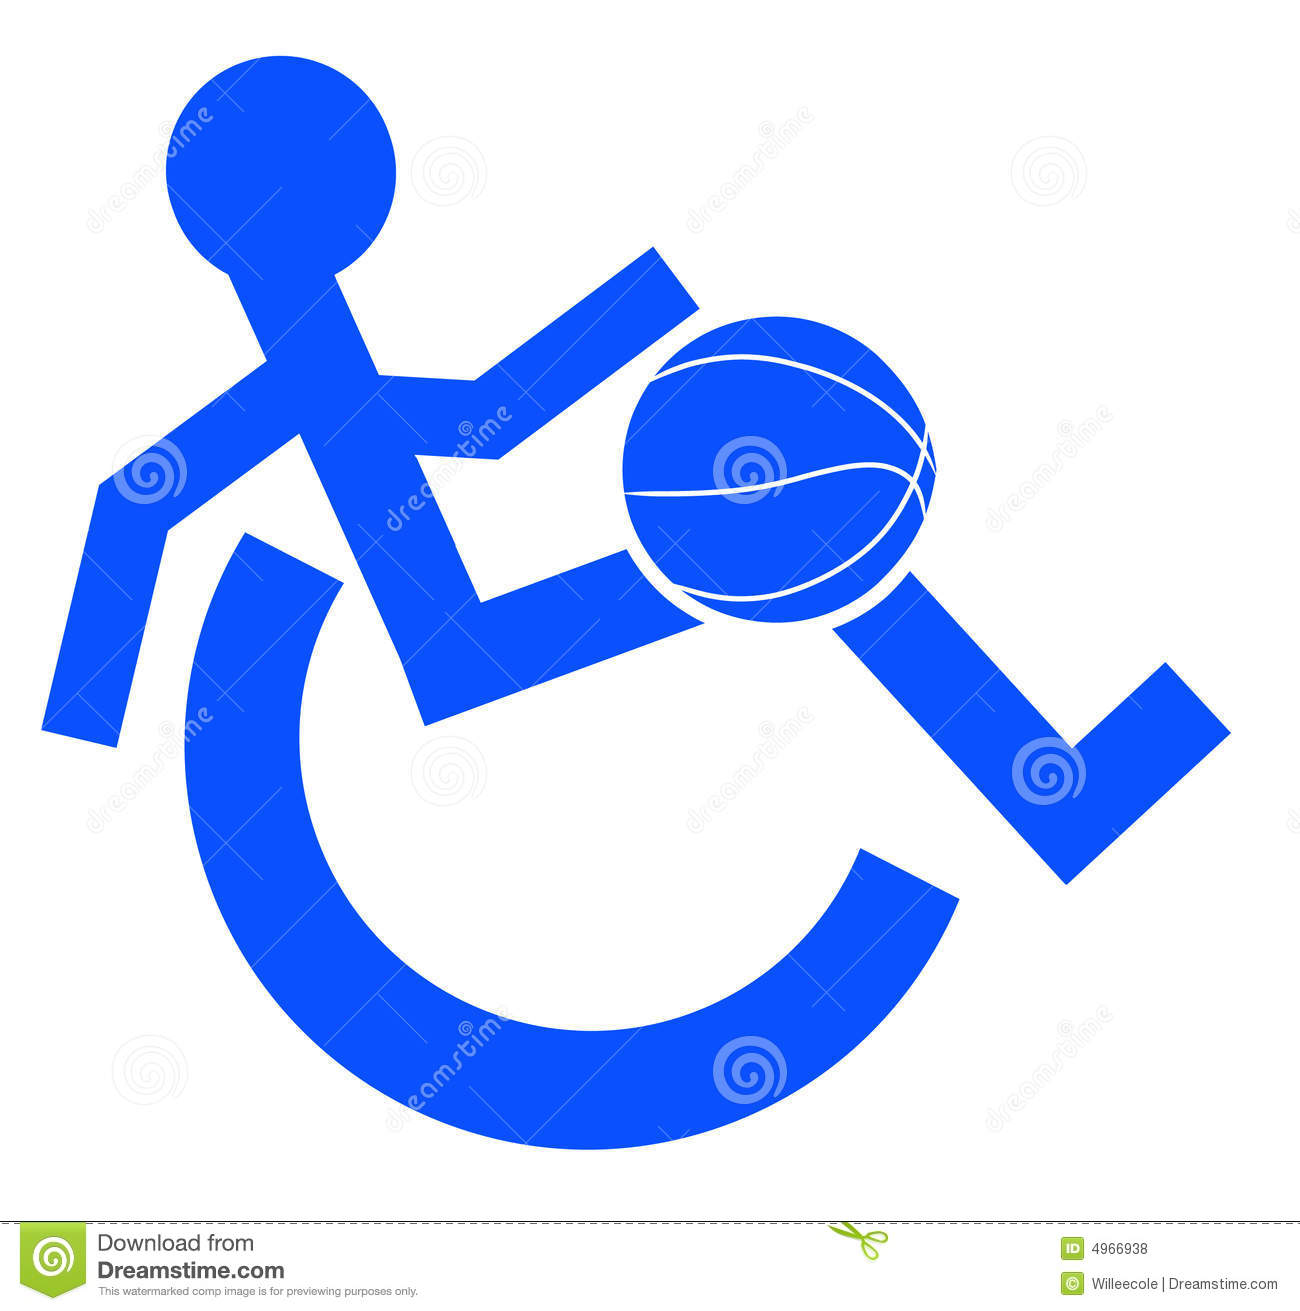 Handicap sports royalty free stock photos image 4966938 Handicapped wheelchair